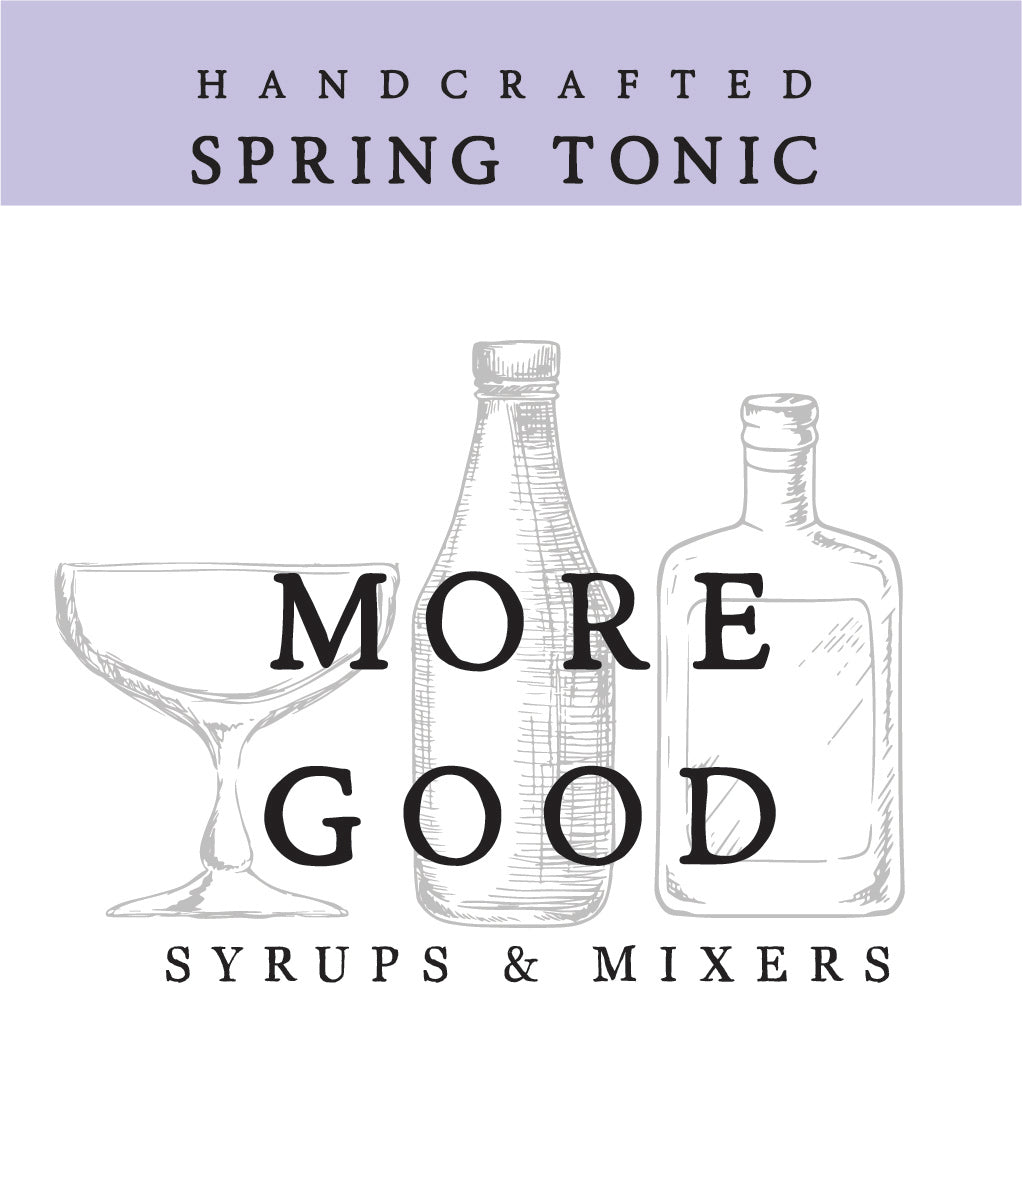 Spring Tonic Syrup